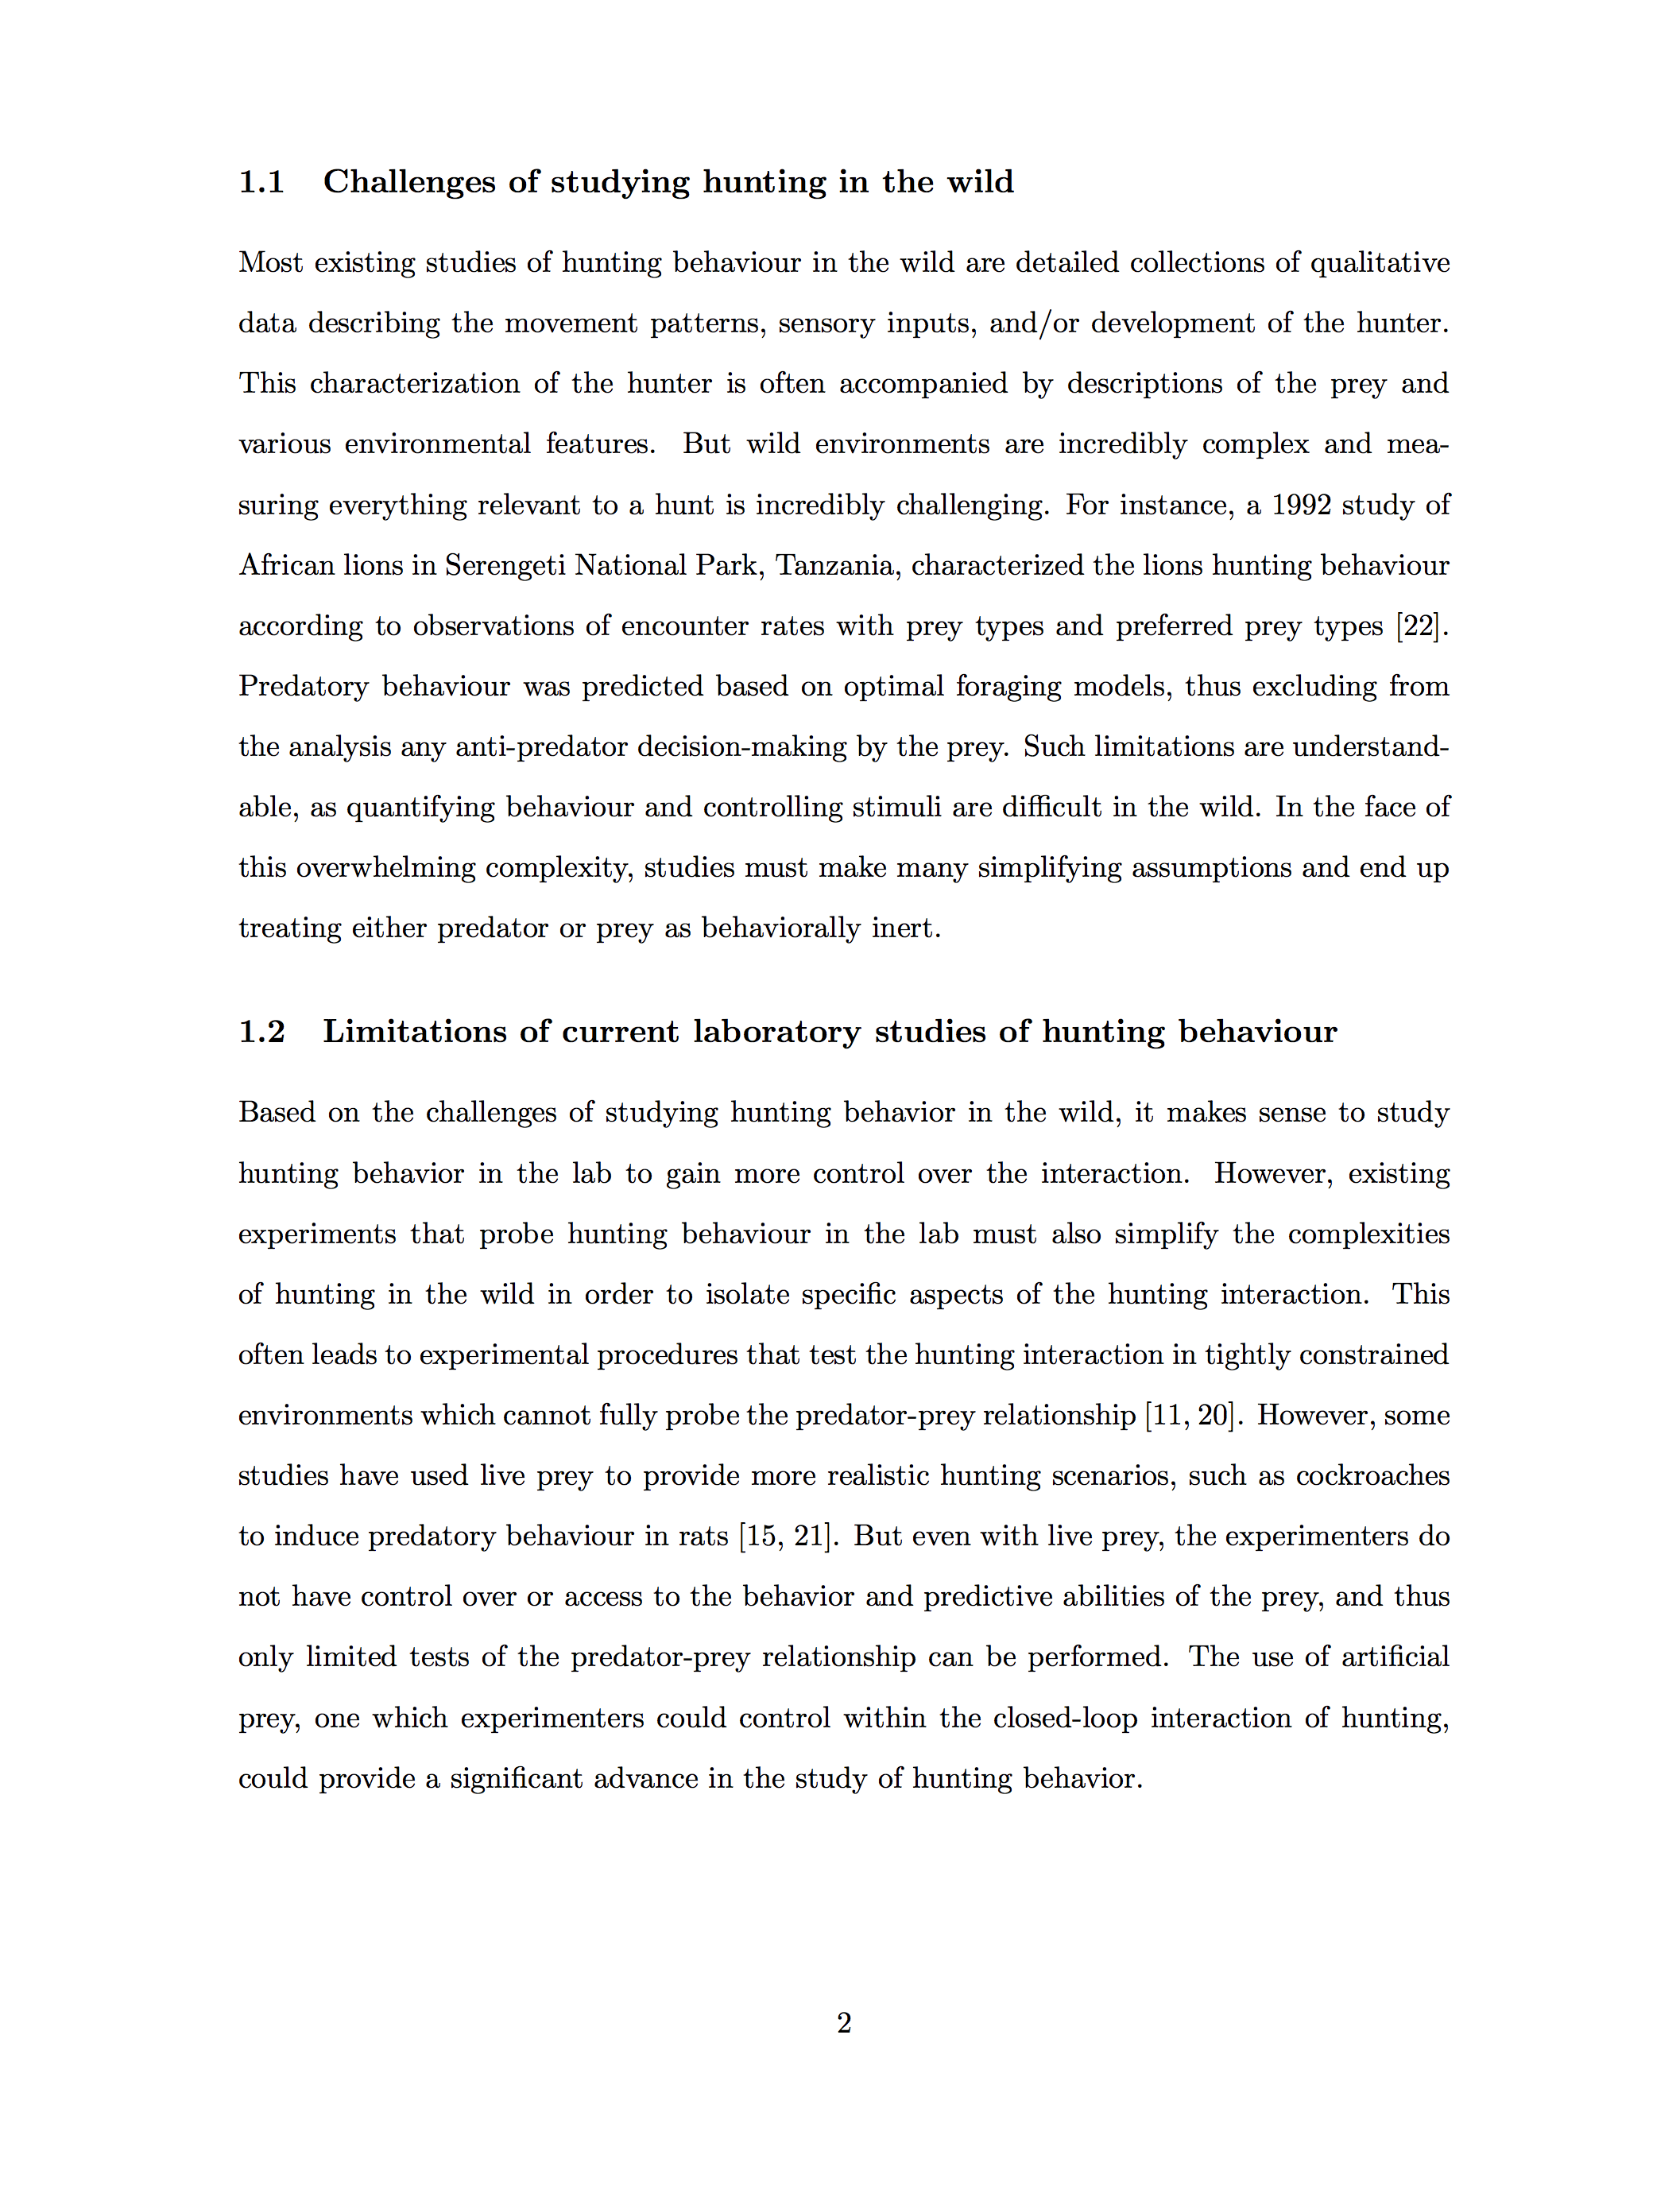 PhD thesis proposal, page 02